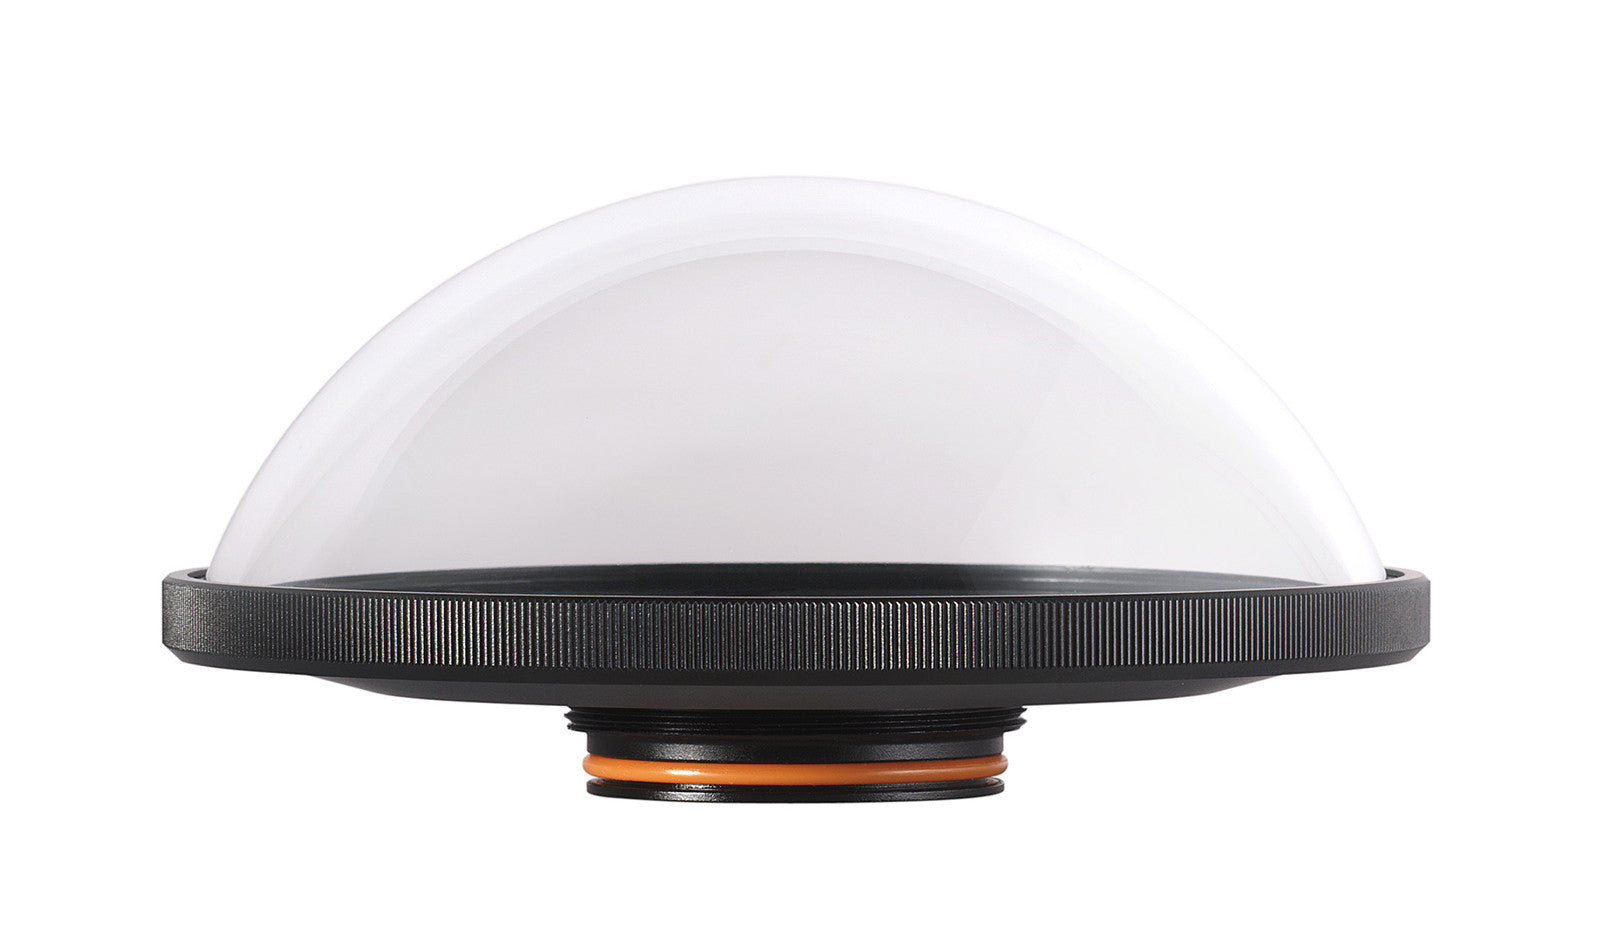 Dome Lens - AxisGO water housing for iPhone